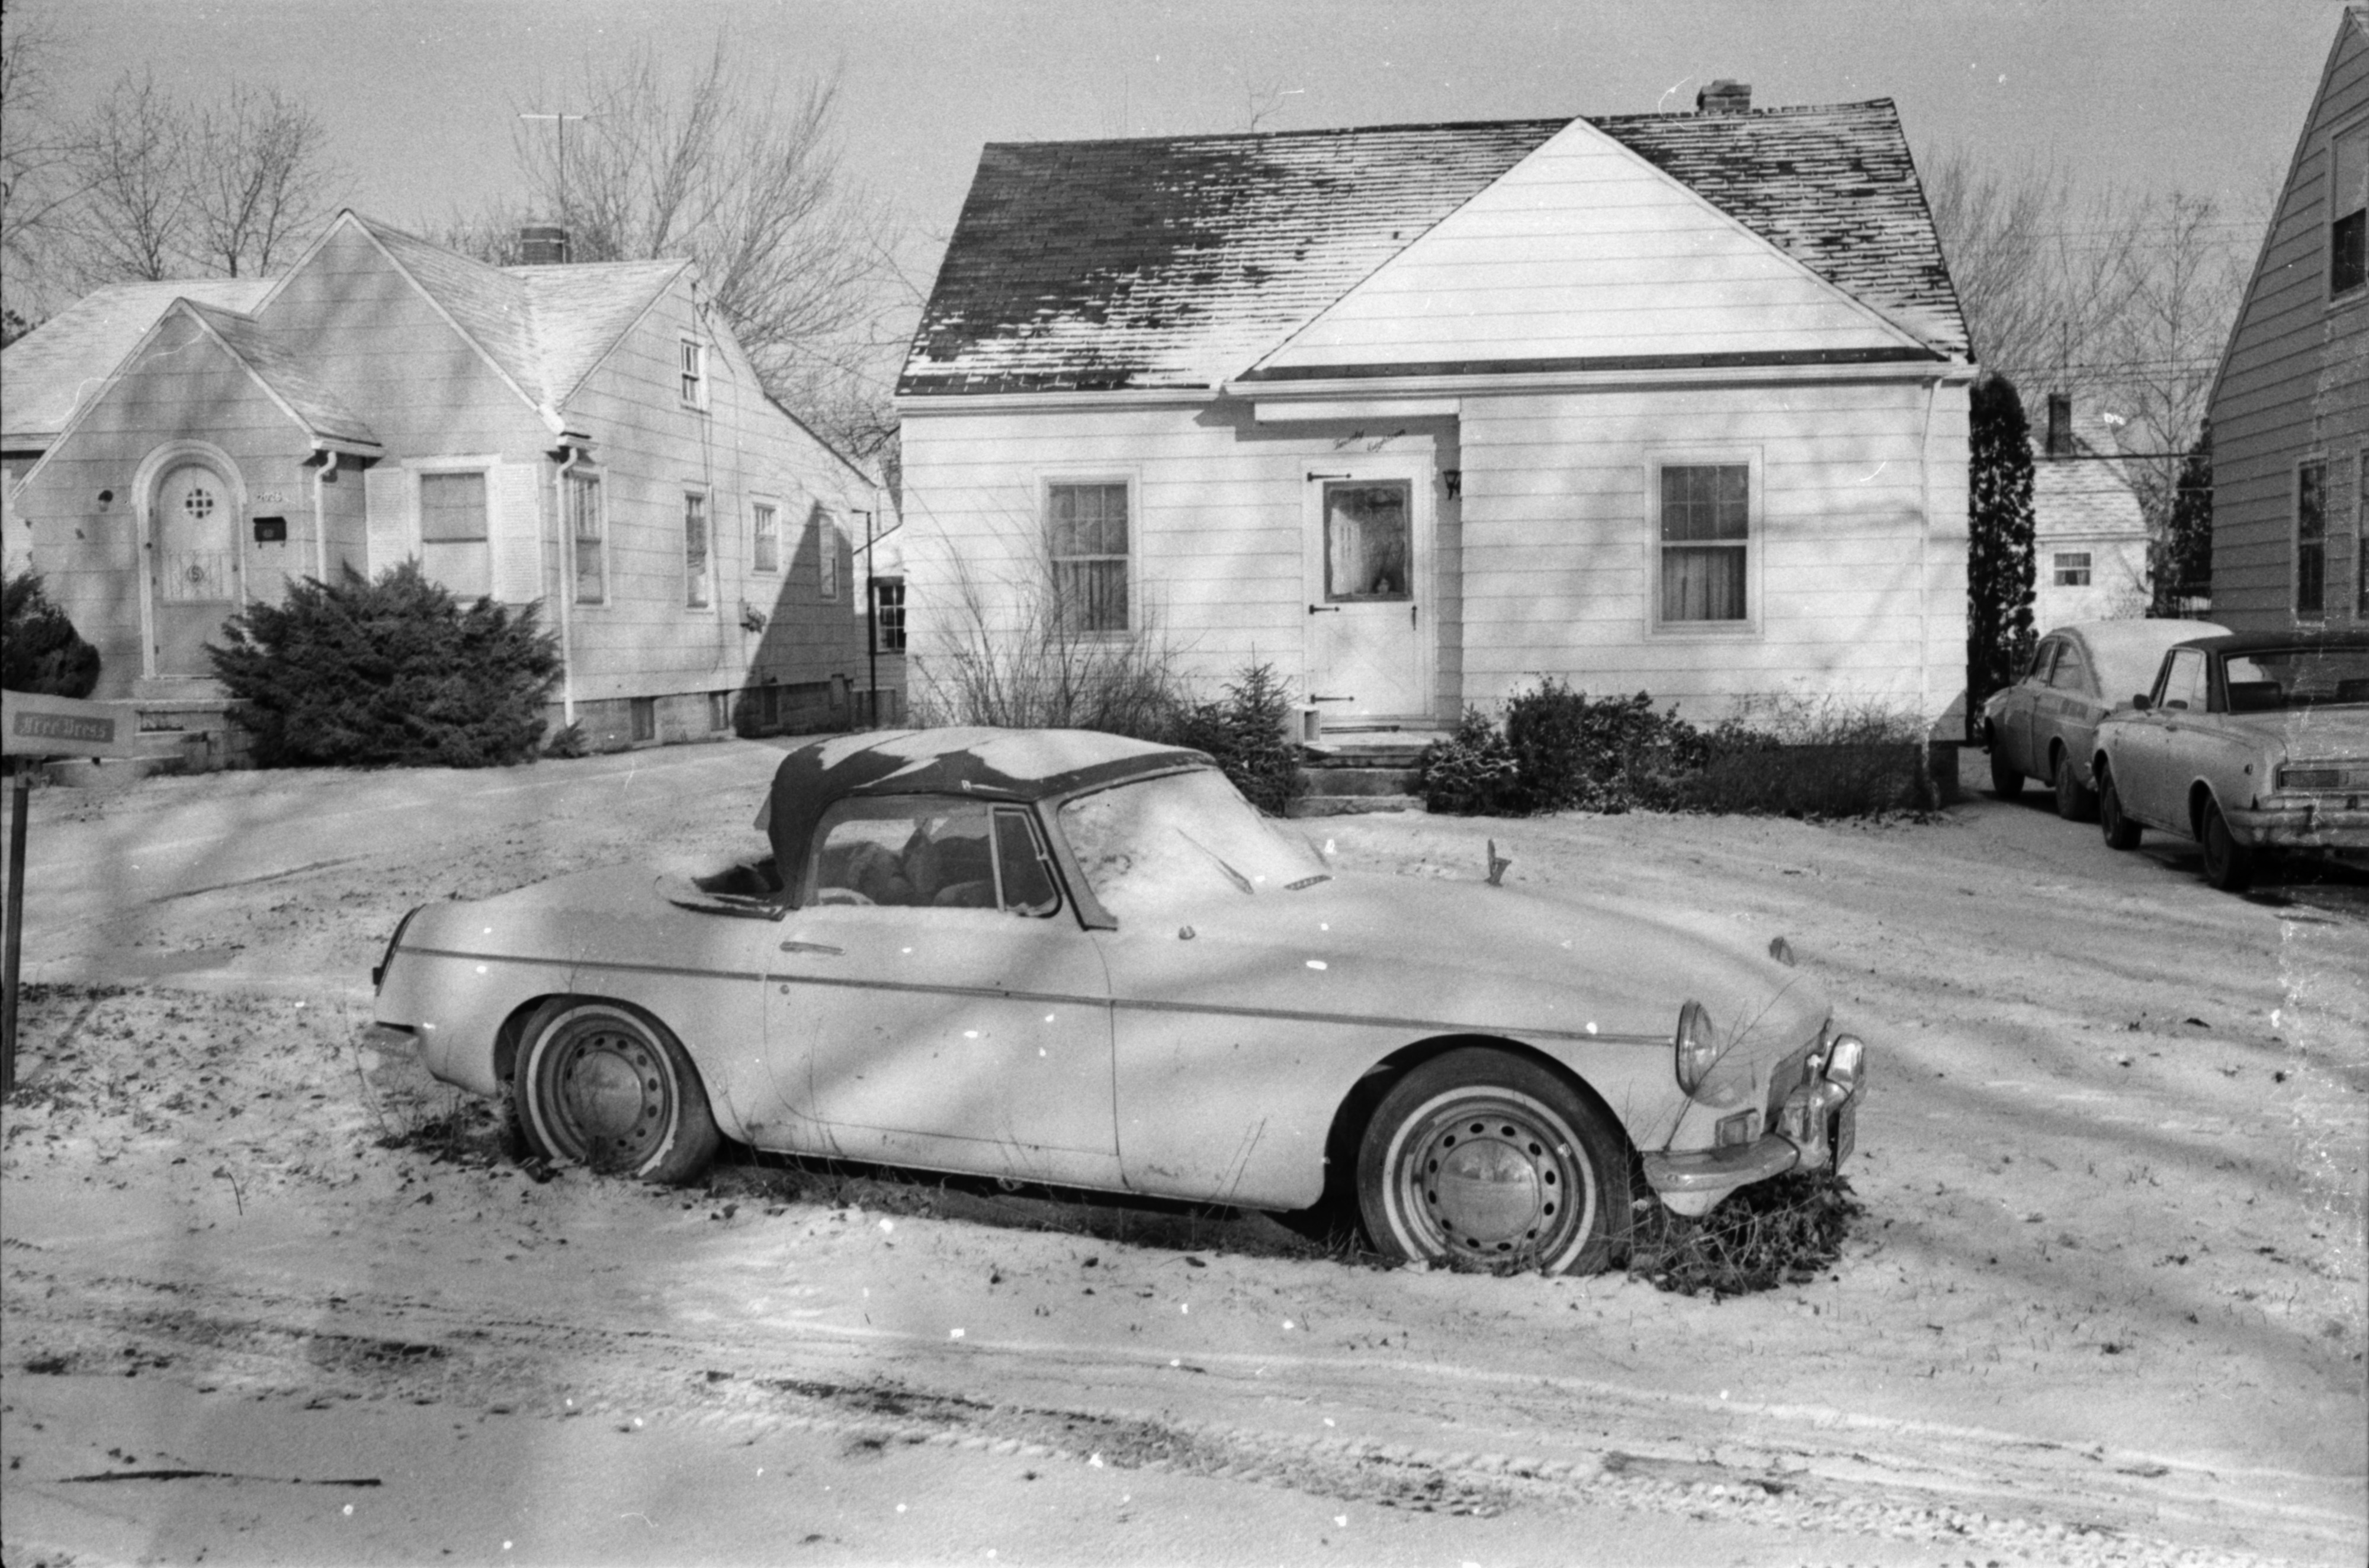 The old model sports car belonging to POW Captain James Warner is parked in the front yard of his parents' home at 2018 McKinley, January 1973 image